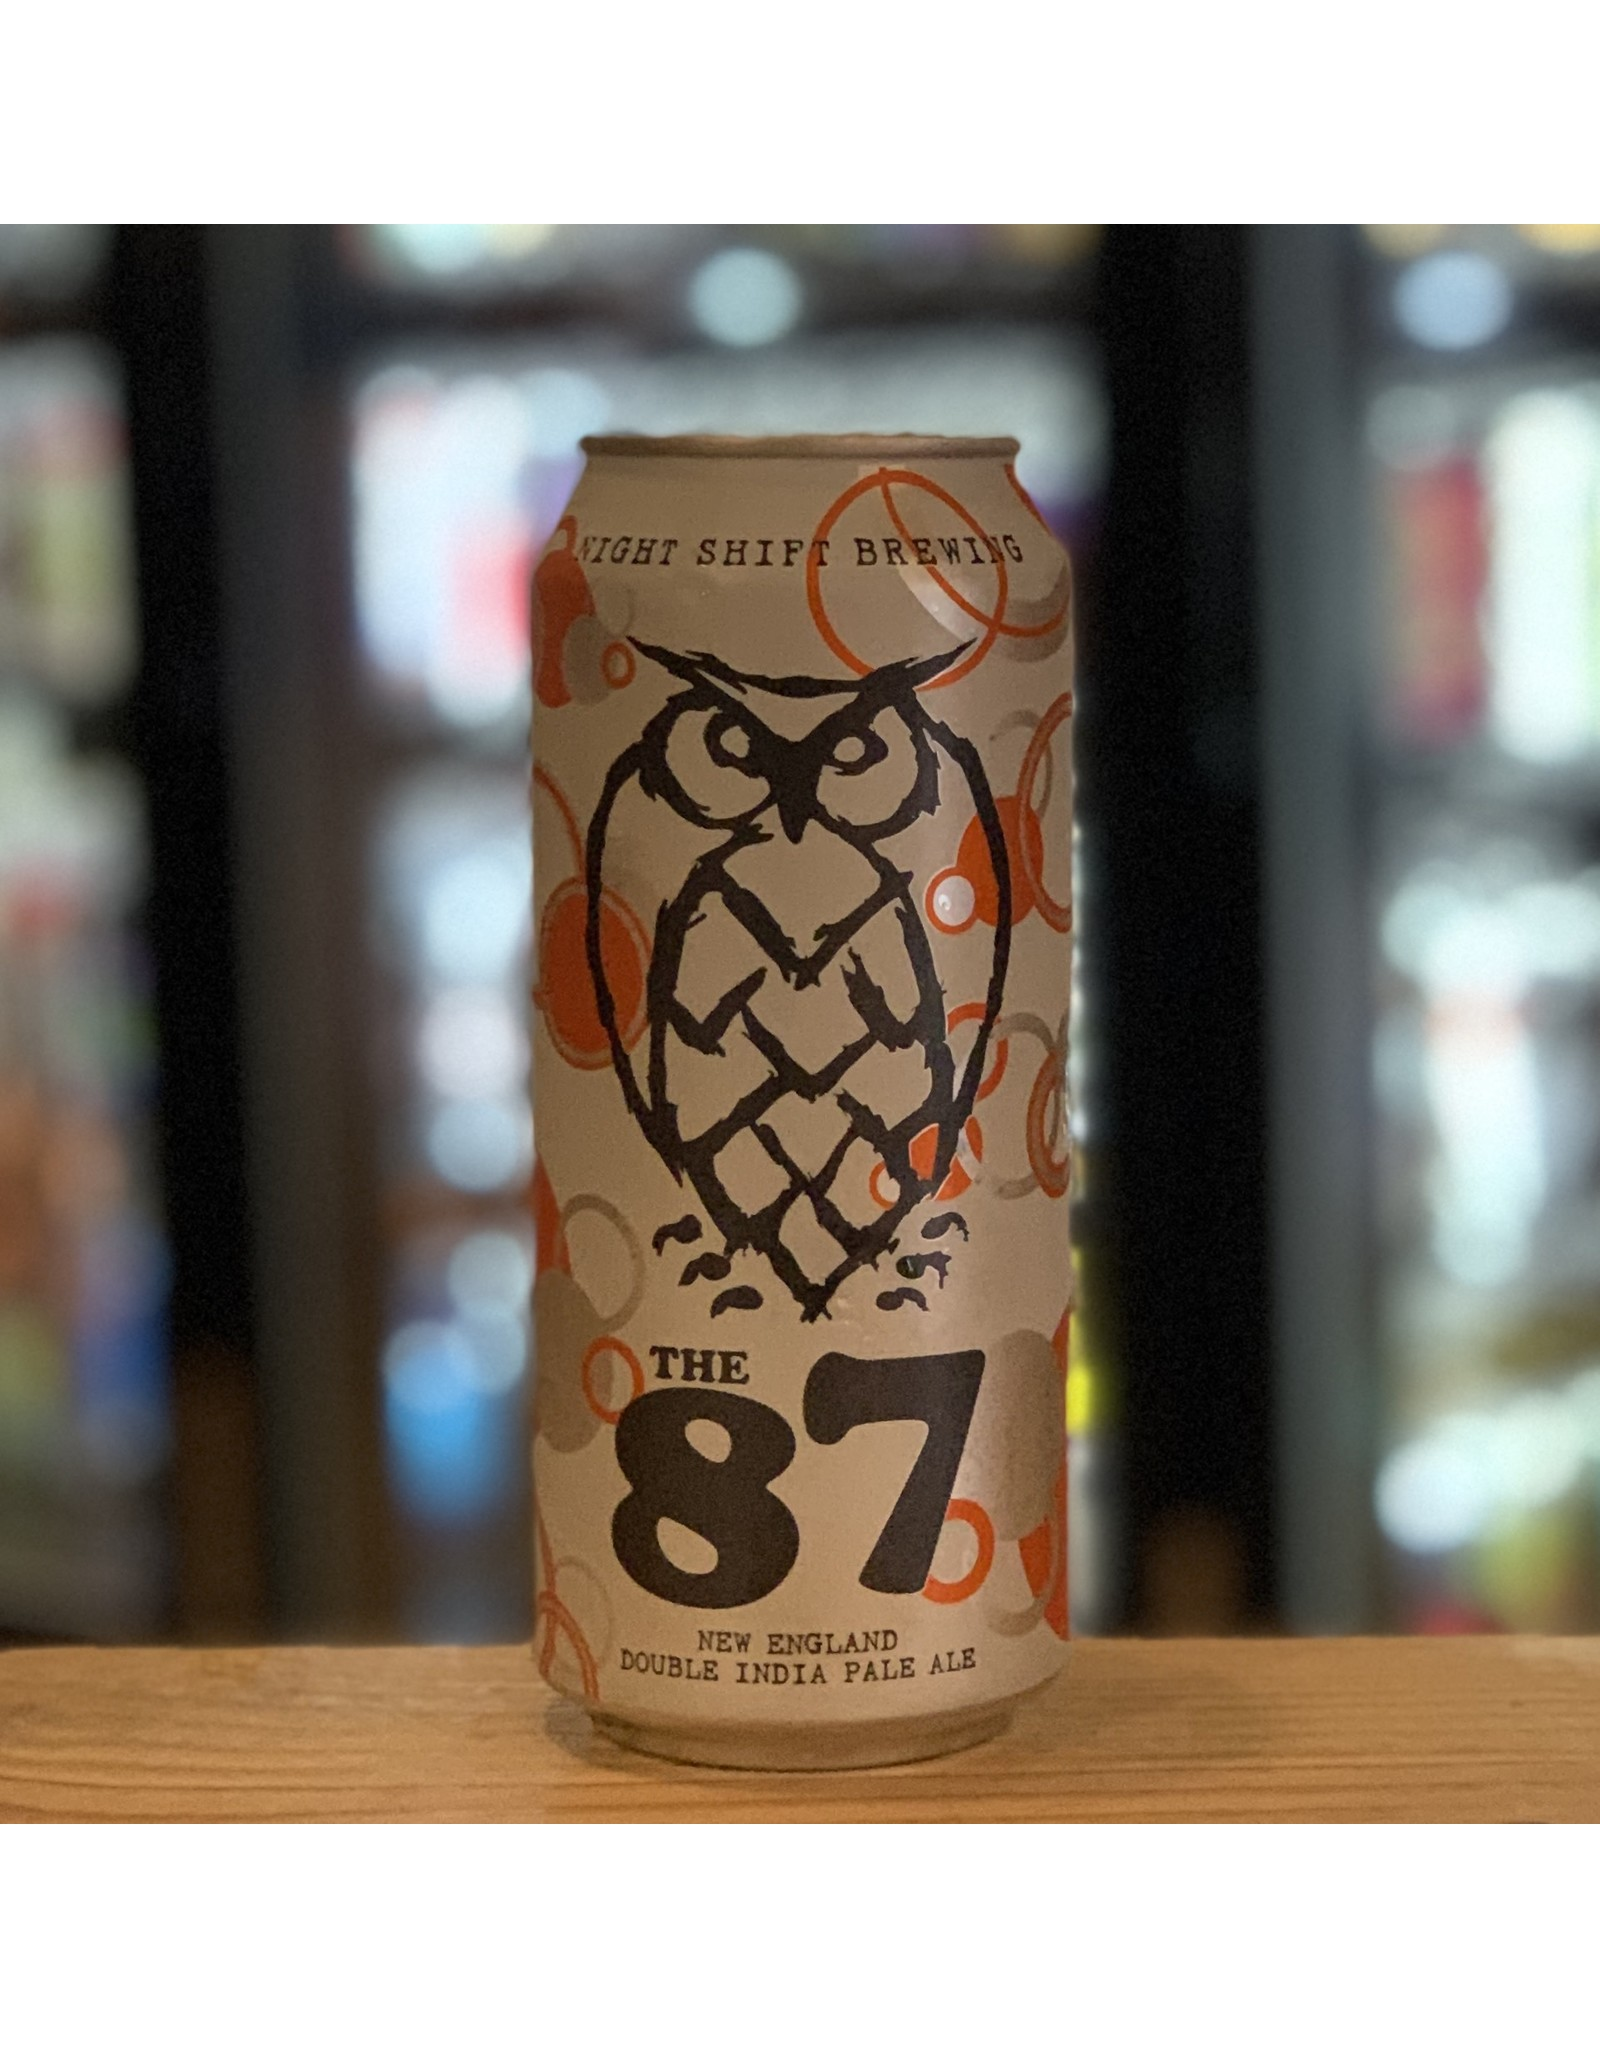 DIPA Night Shift ''The 87'' DIPA - Everett, MA